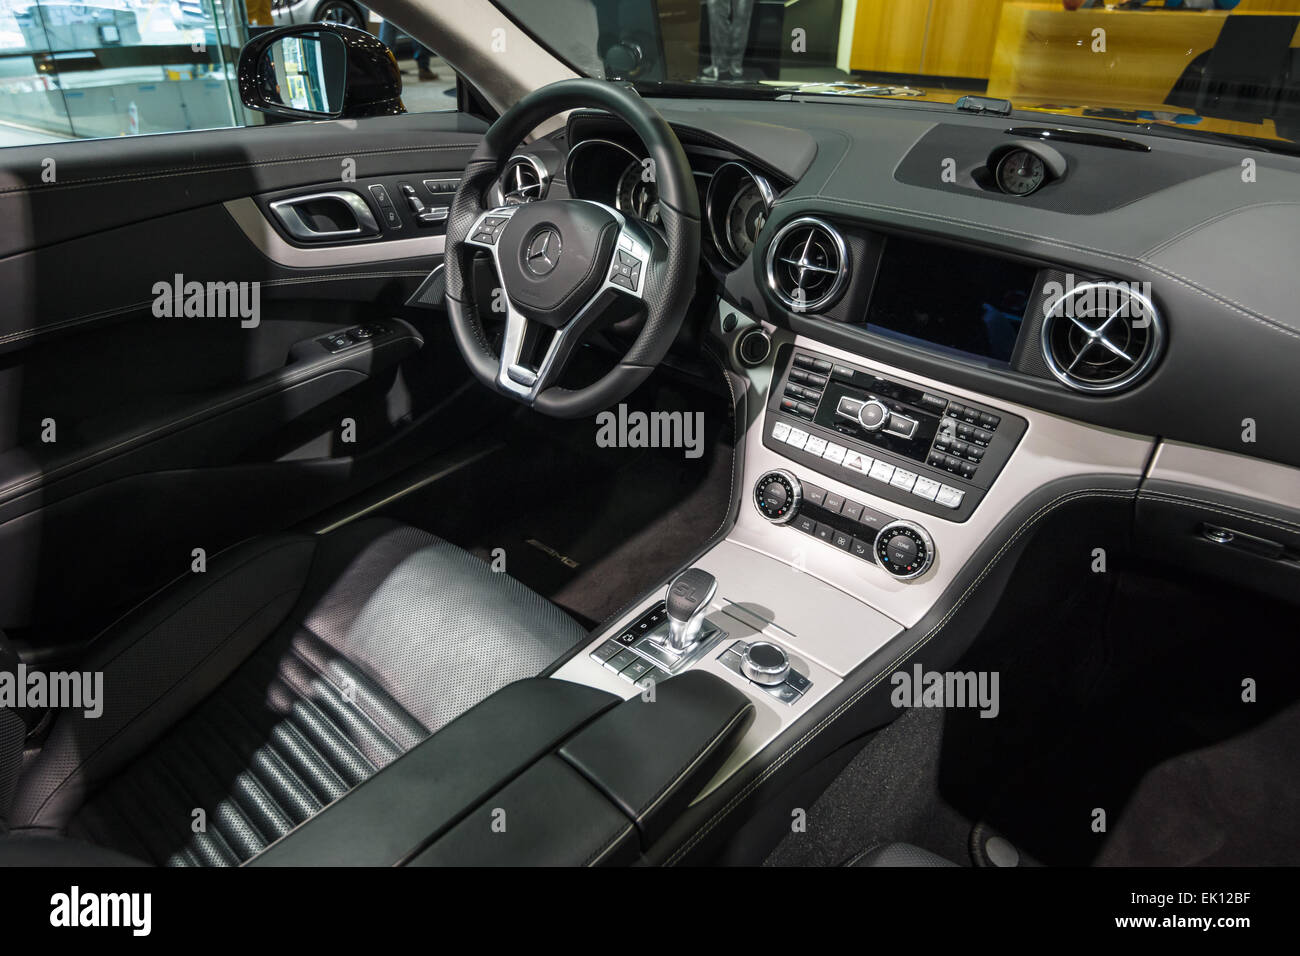 berlin january 24 2015 cabin of a sports car mercedes benz sl500 stock photo royalty free. Black Bedroom Furniture Sets. Home Design Ideas